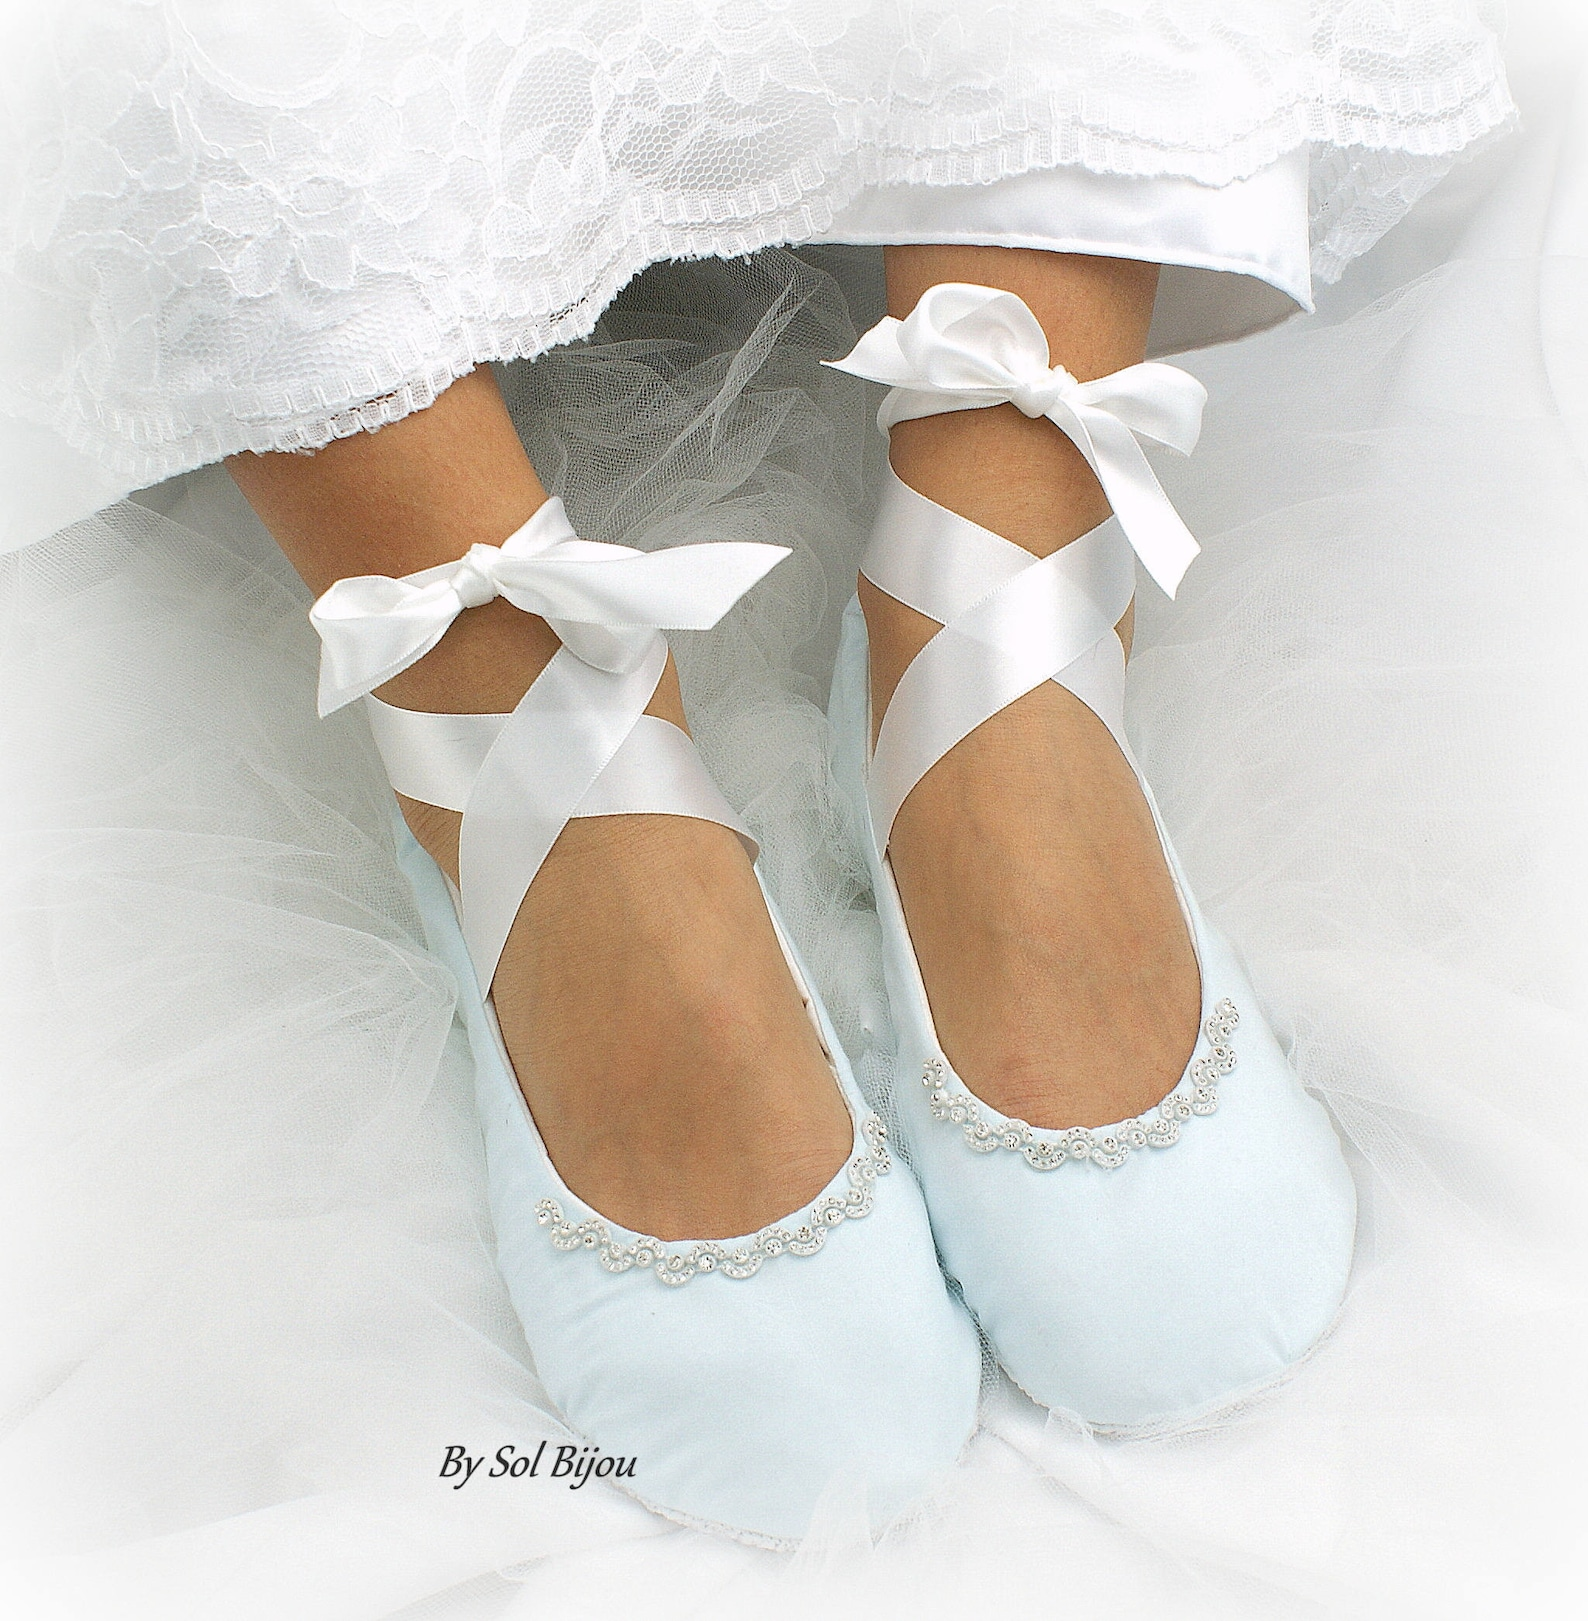 wedding ballet flats something blue white bridal shoes wedding flats shoes flats with flowers blue ballet slippers shoes custom